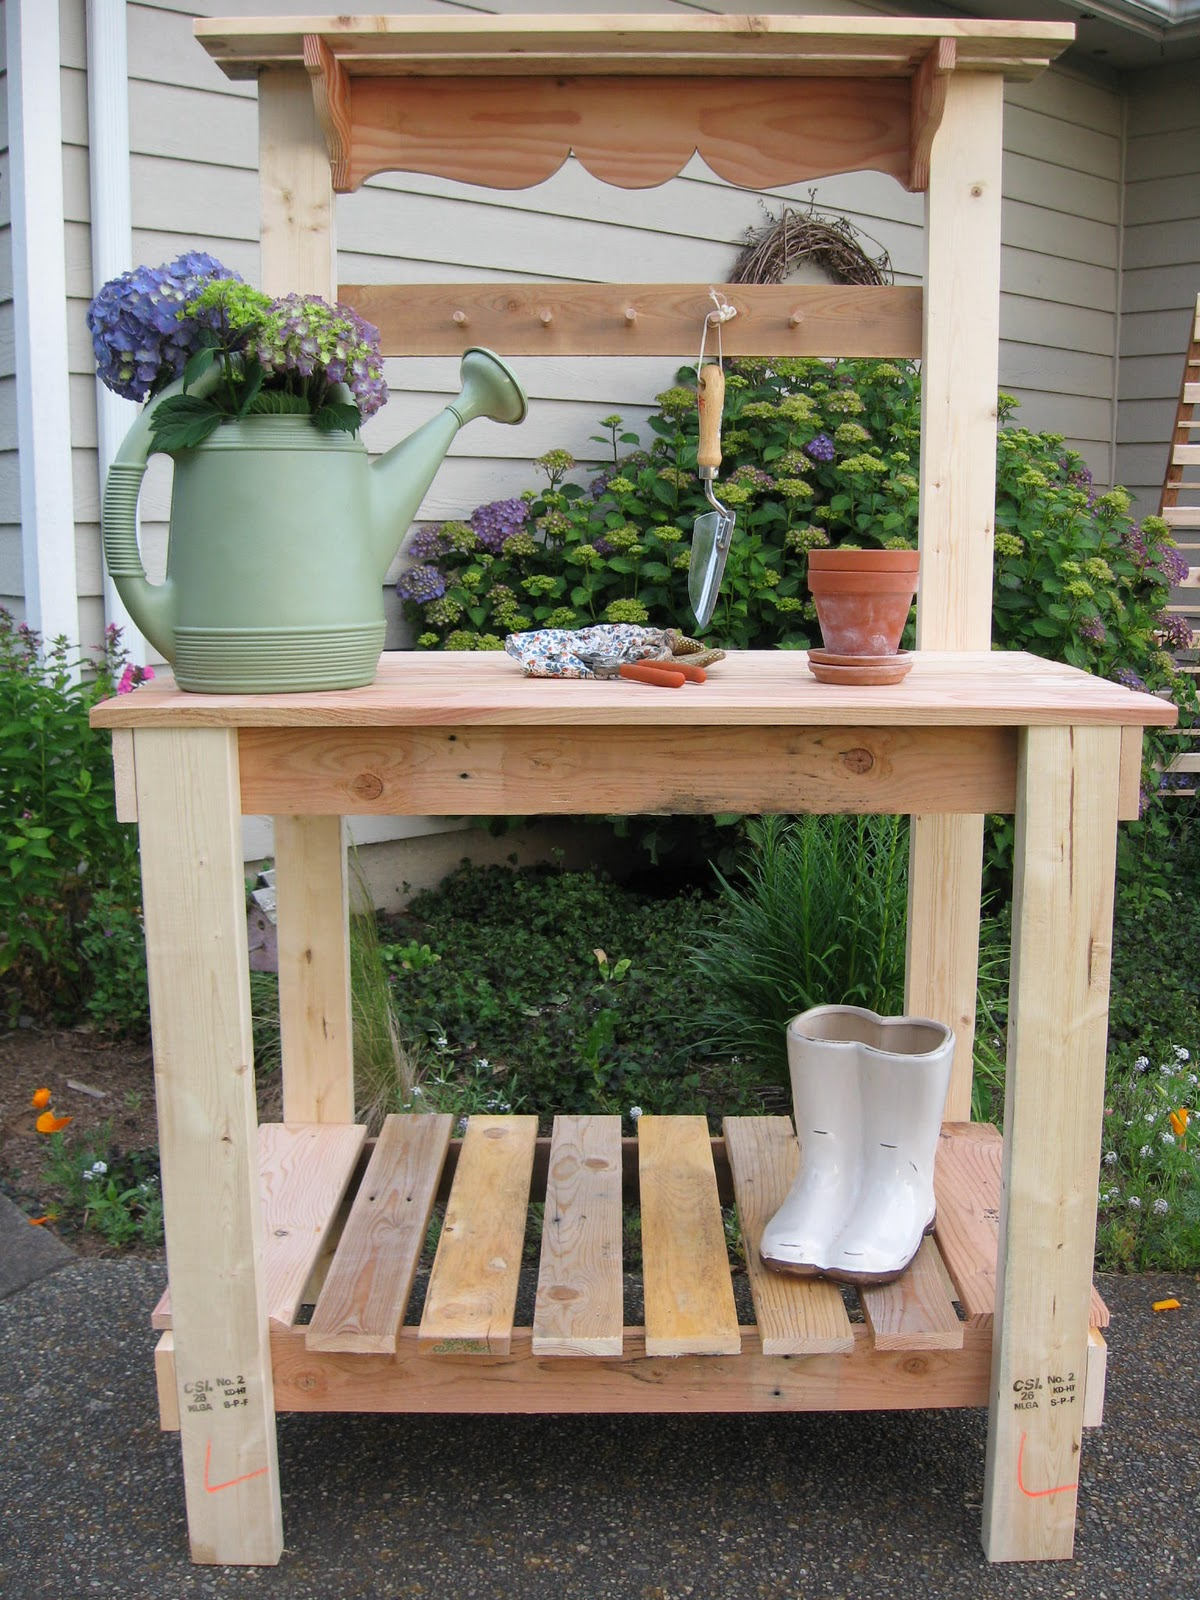 Dream garden woodworks basic potting bench Outdoor potting bench